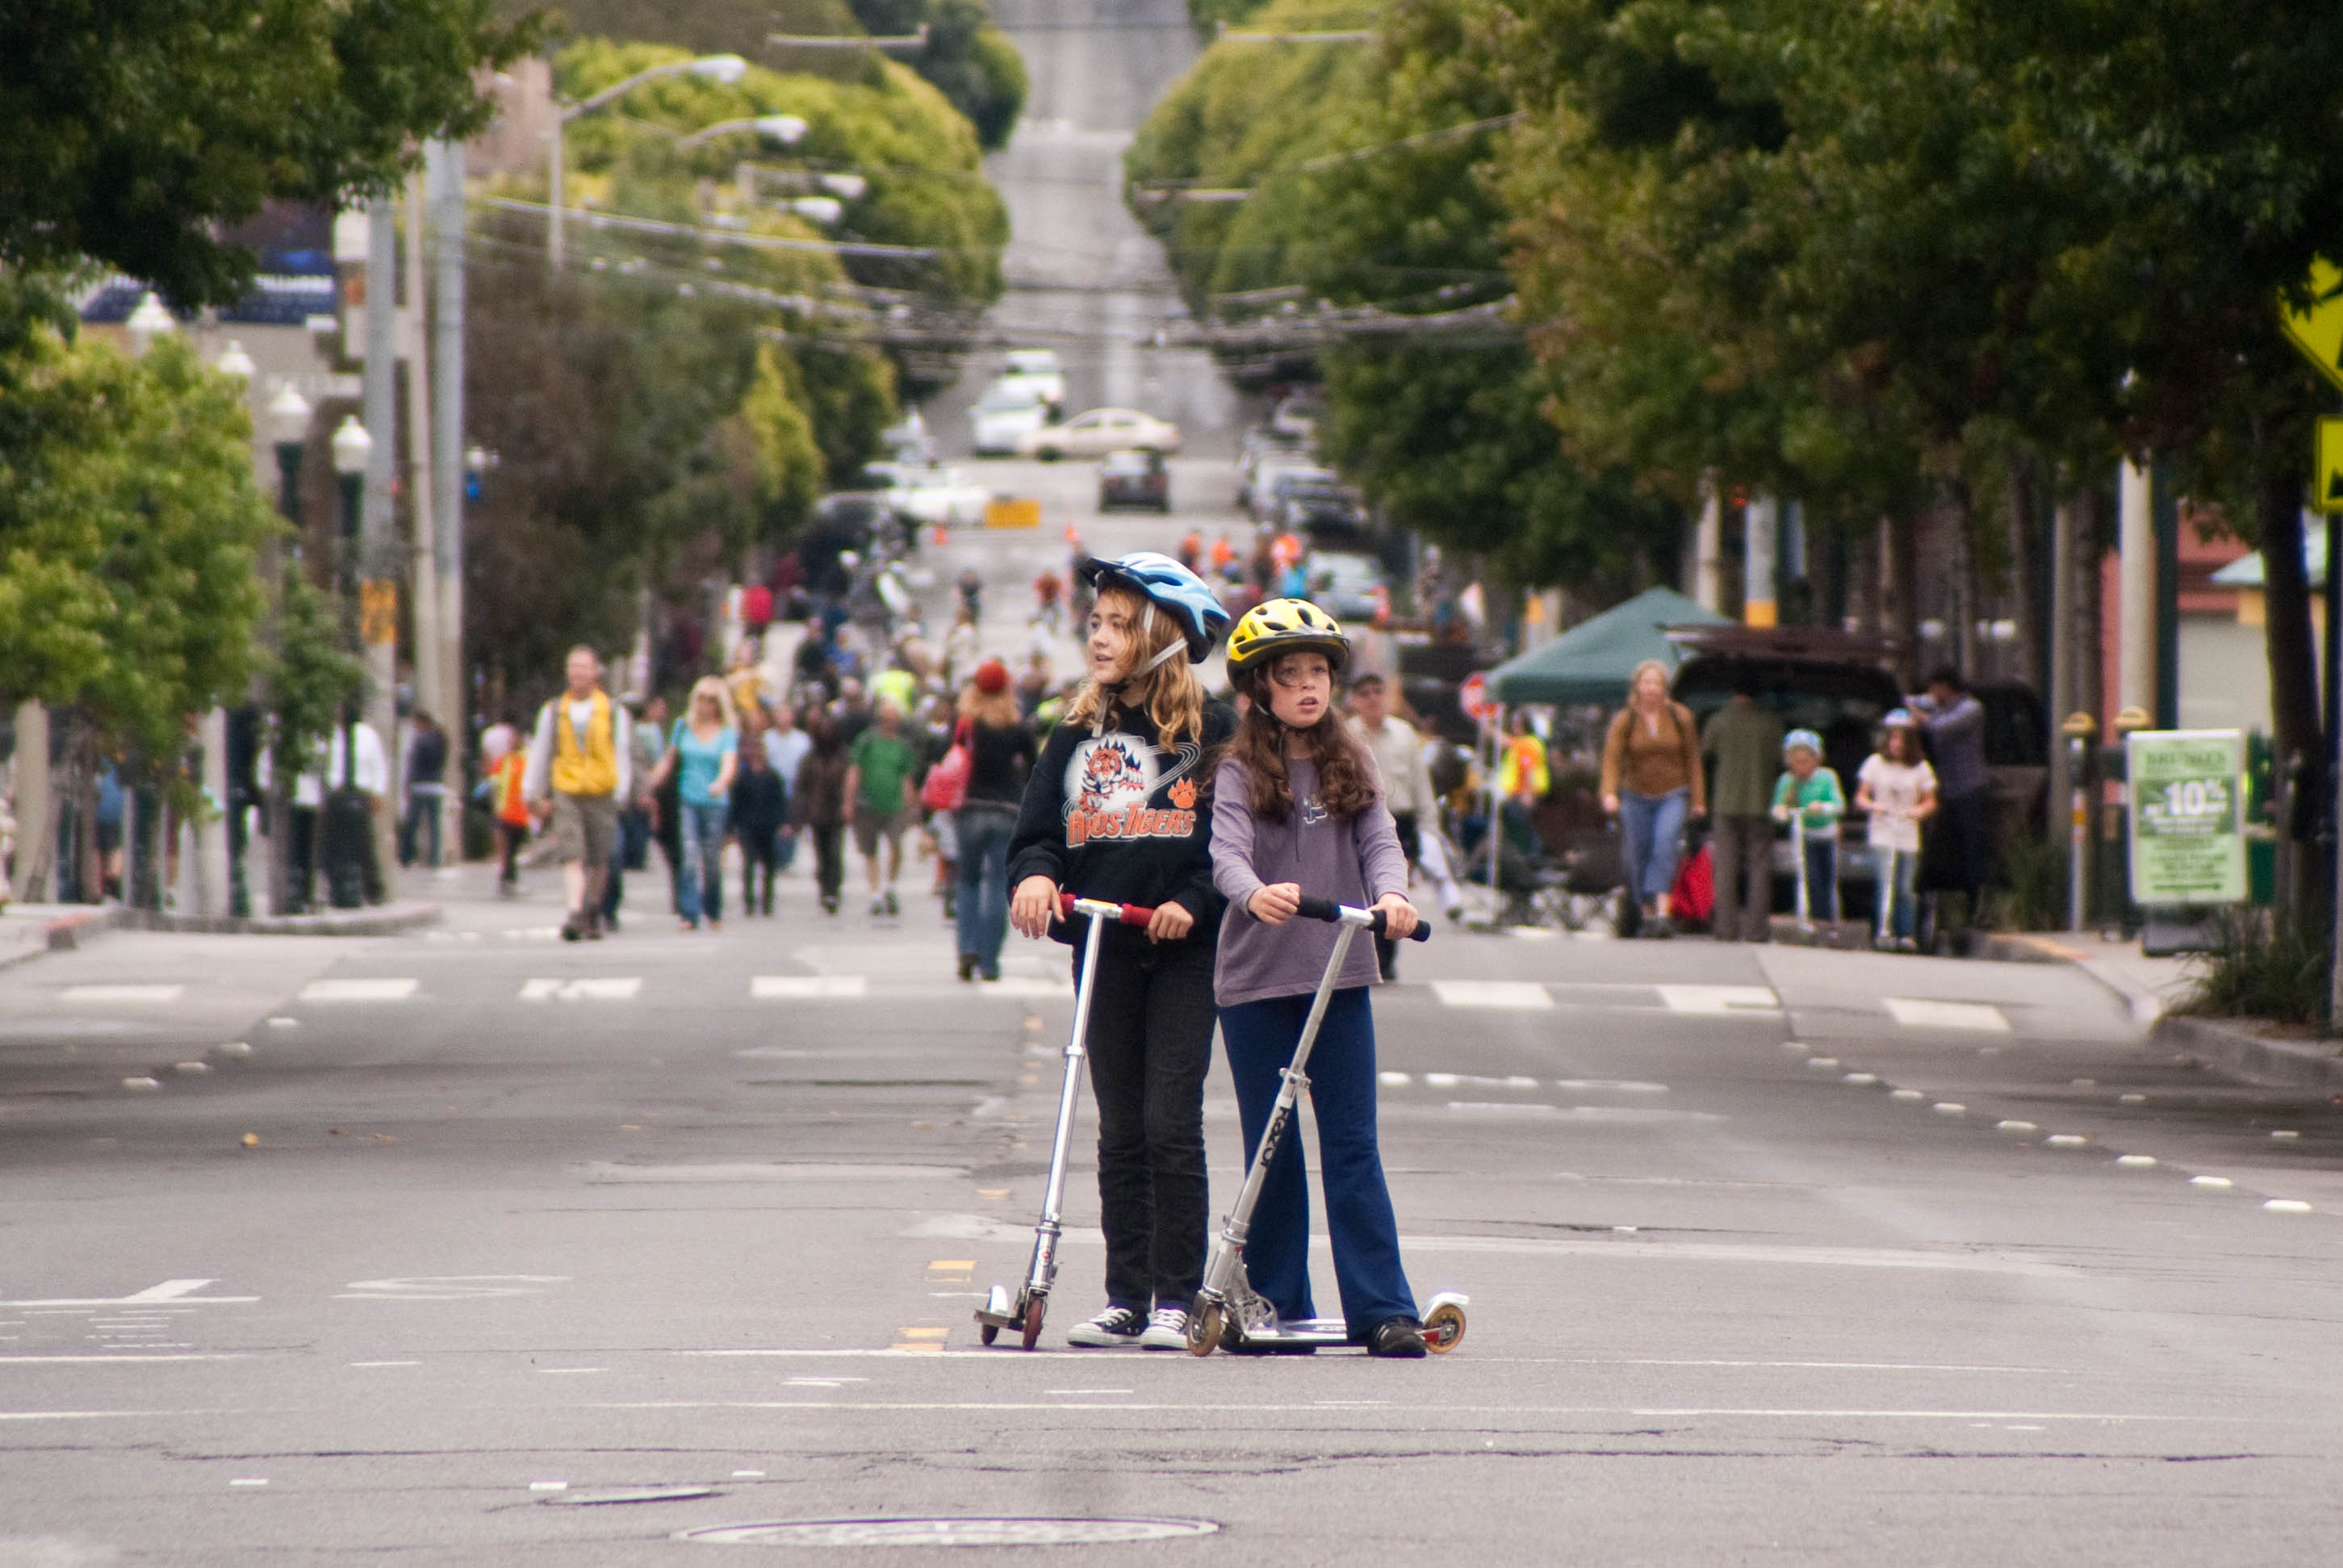 12927 Girls on scooters figure out where to go next from Fillmore at O'Farrell